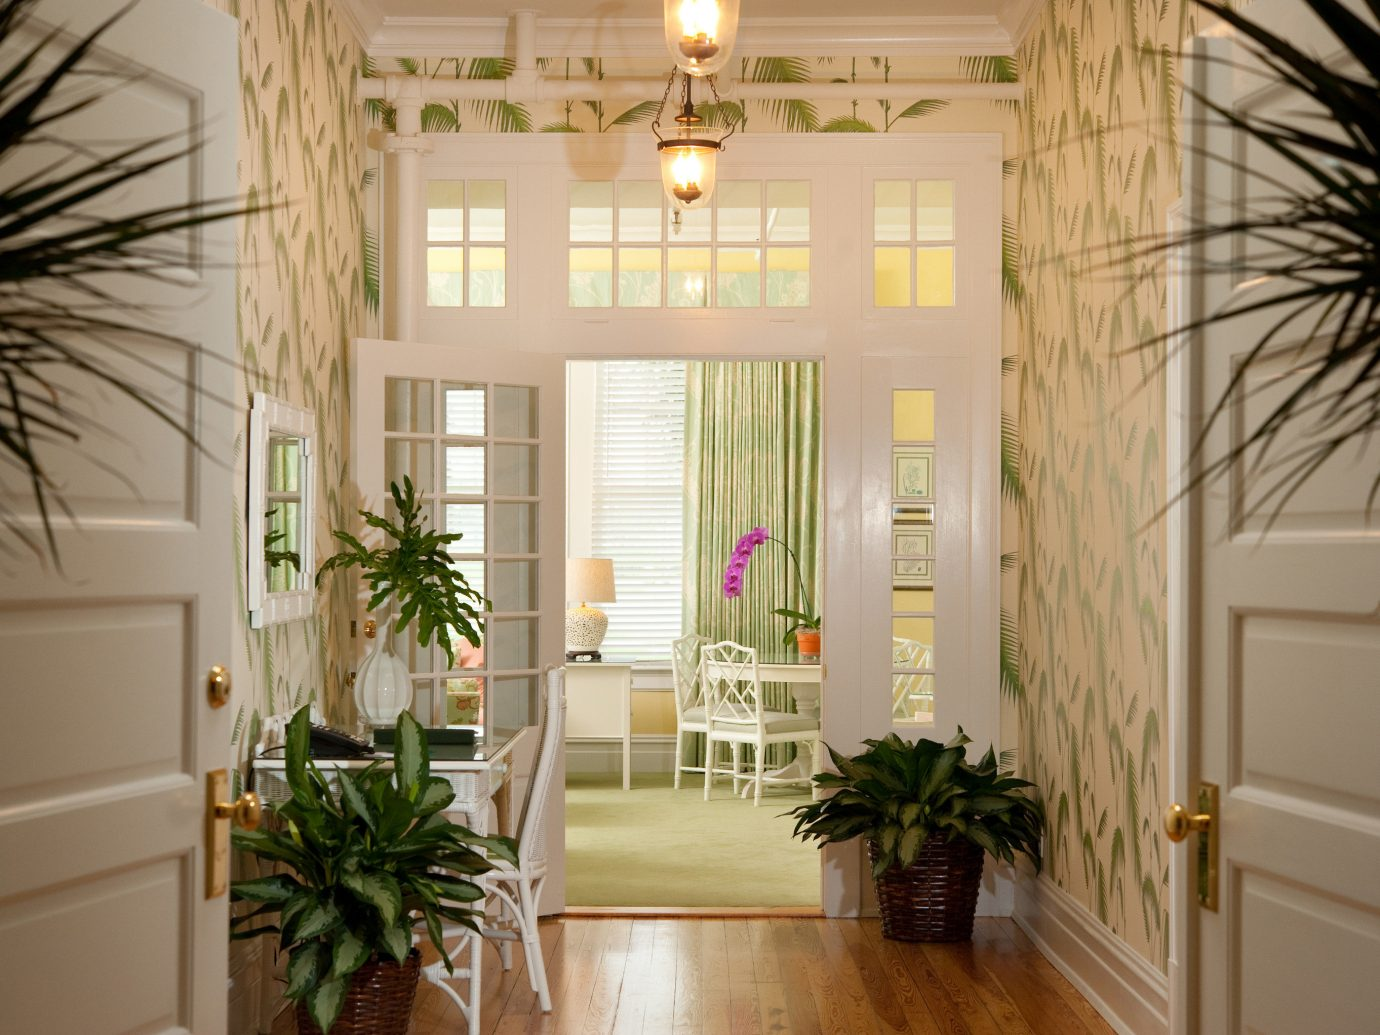 french doors hallway Lounge Trip Ideas plant indoor room home window palm living room house estate interior design hall lighting Lobby Design condominium apartment decorated furniture